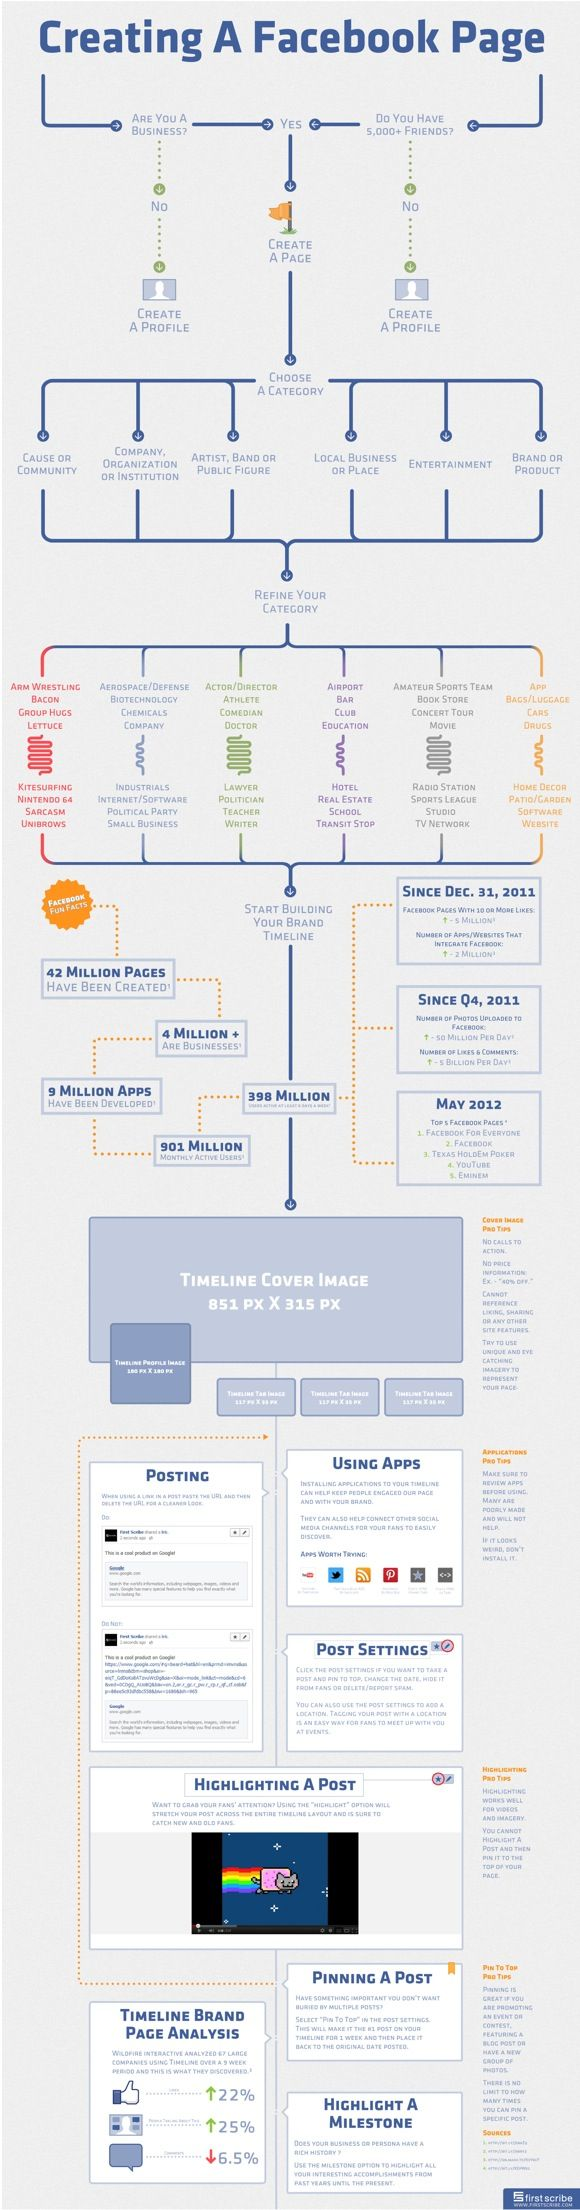 7 Best Illustrator Images On Pinterest Cowls Info Graphics And What Is Electric Circuit Ency123 Learn Create Have Fun 35 Tips About Branding Facebook Or Twitter